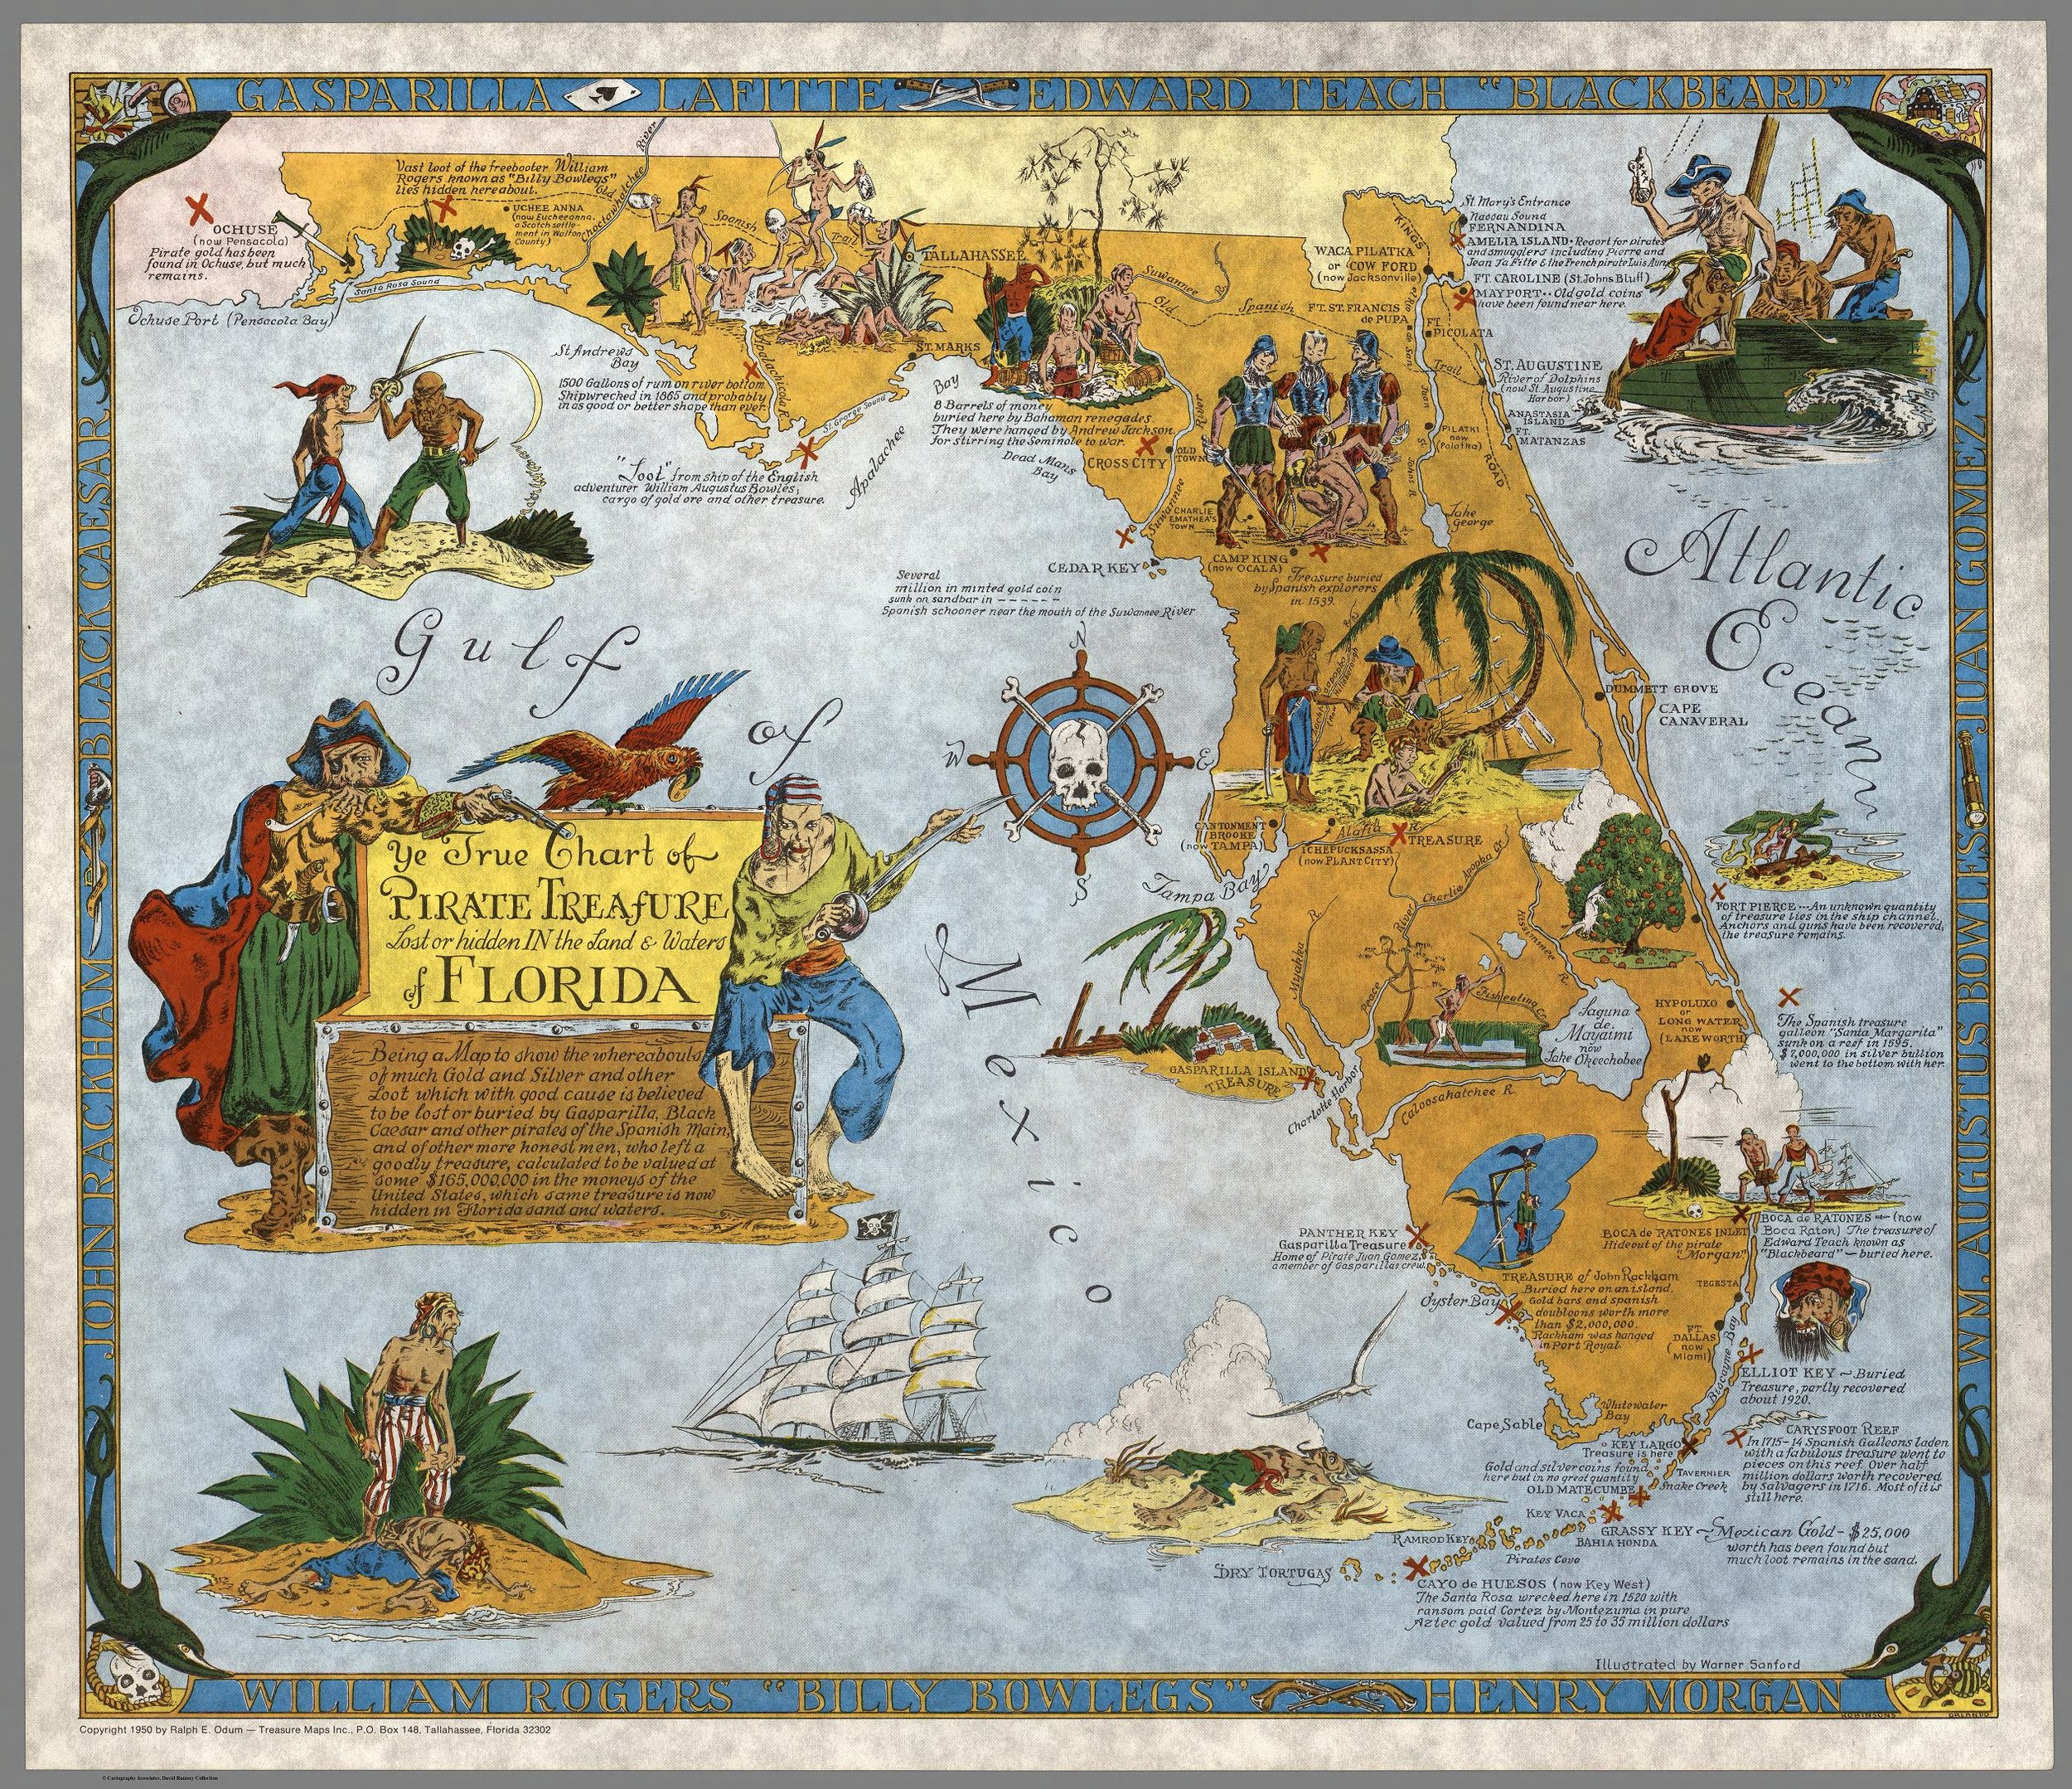 Ye True Chart of Pirate Treasure Lost or Hidden In the Land & Waters of Florida